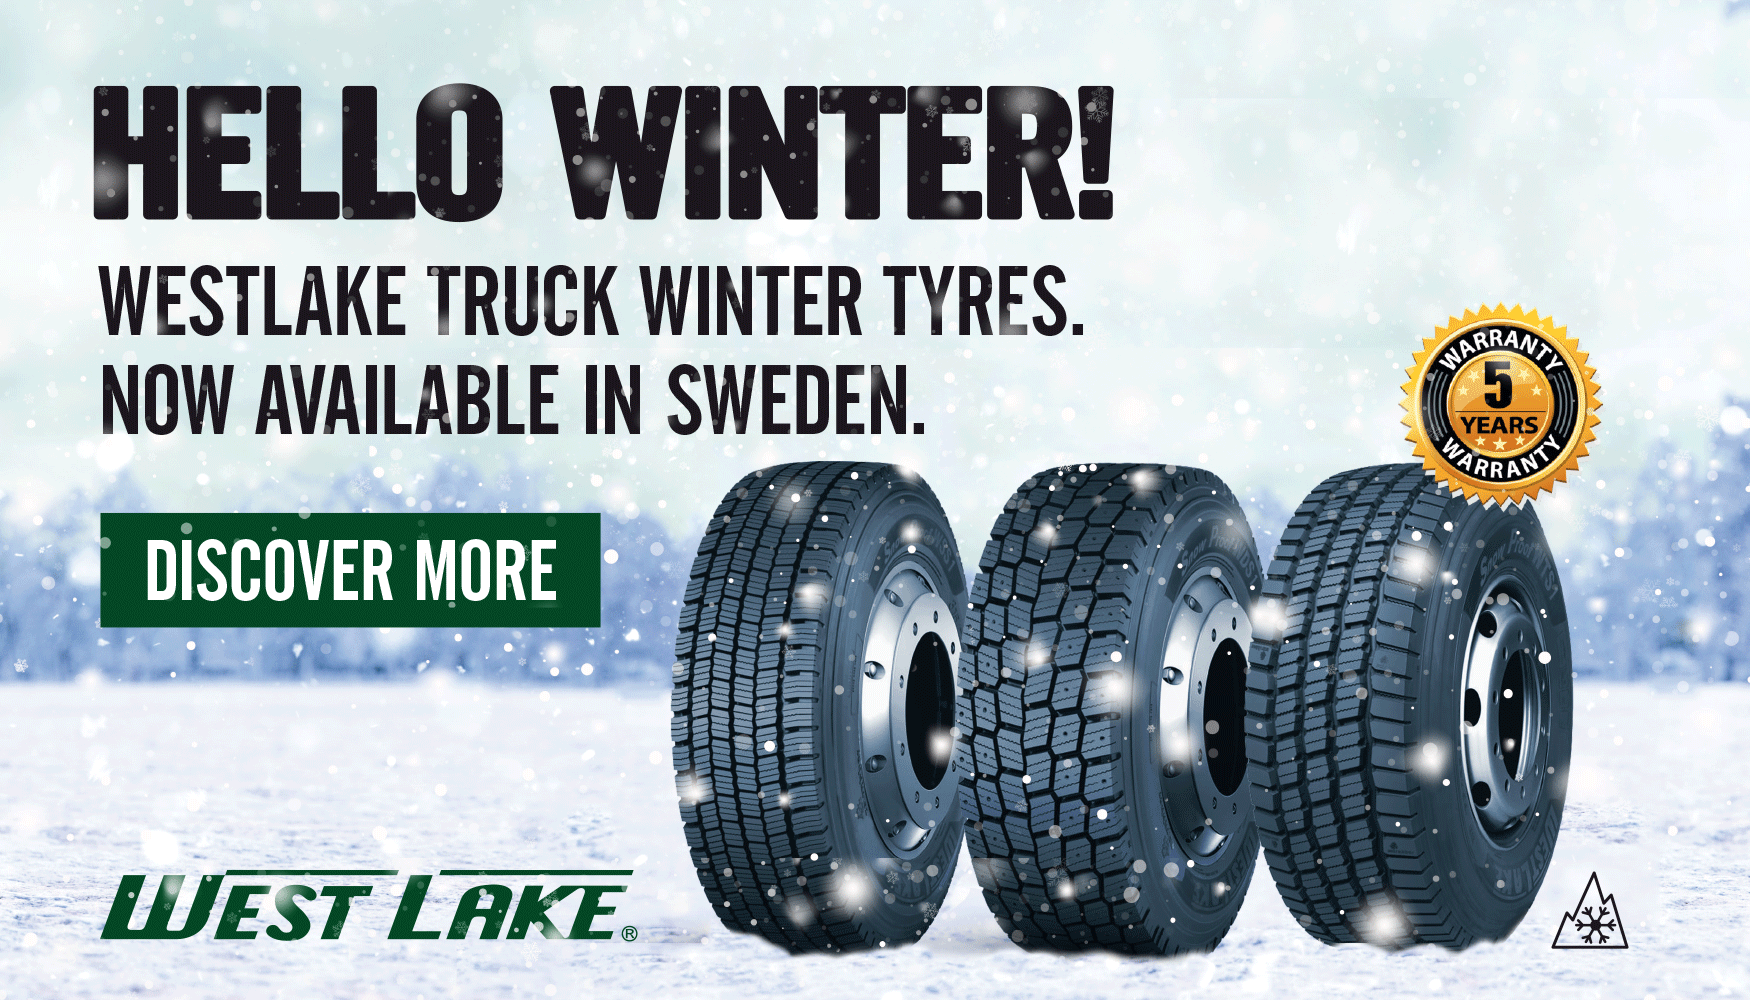 Welcome Winter. Westlake Truck Winter Tyres. Now available in Sweden.